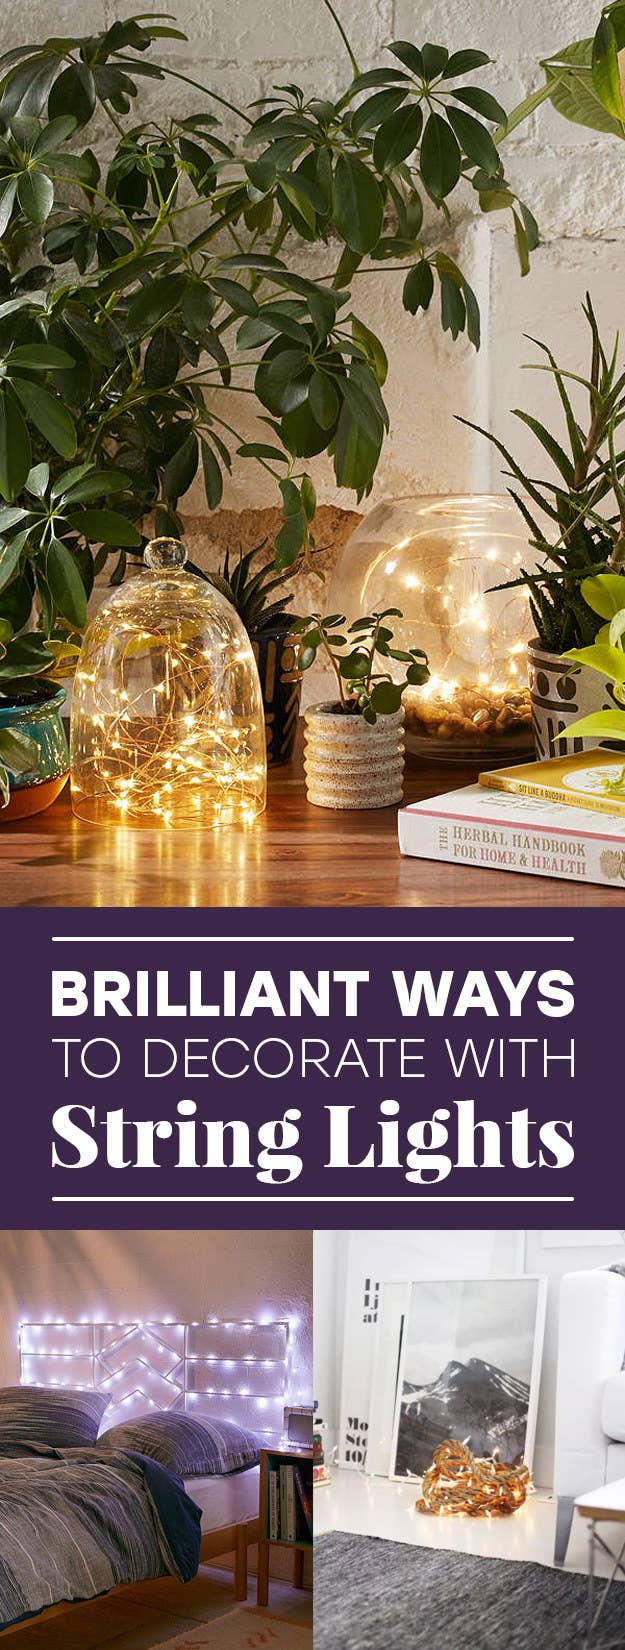 26 Gorgeous Ways To Decorate Your Home With String Lights Wiring Pot A Tutorial Kinda Mom And Her Drill We Hope You Love The Products Recommend Just So Know Buzzfeed May